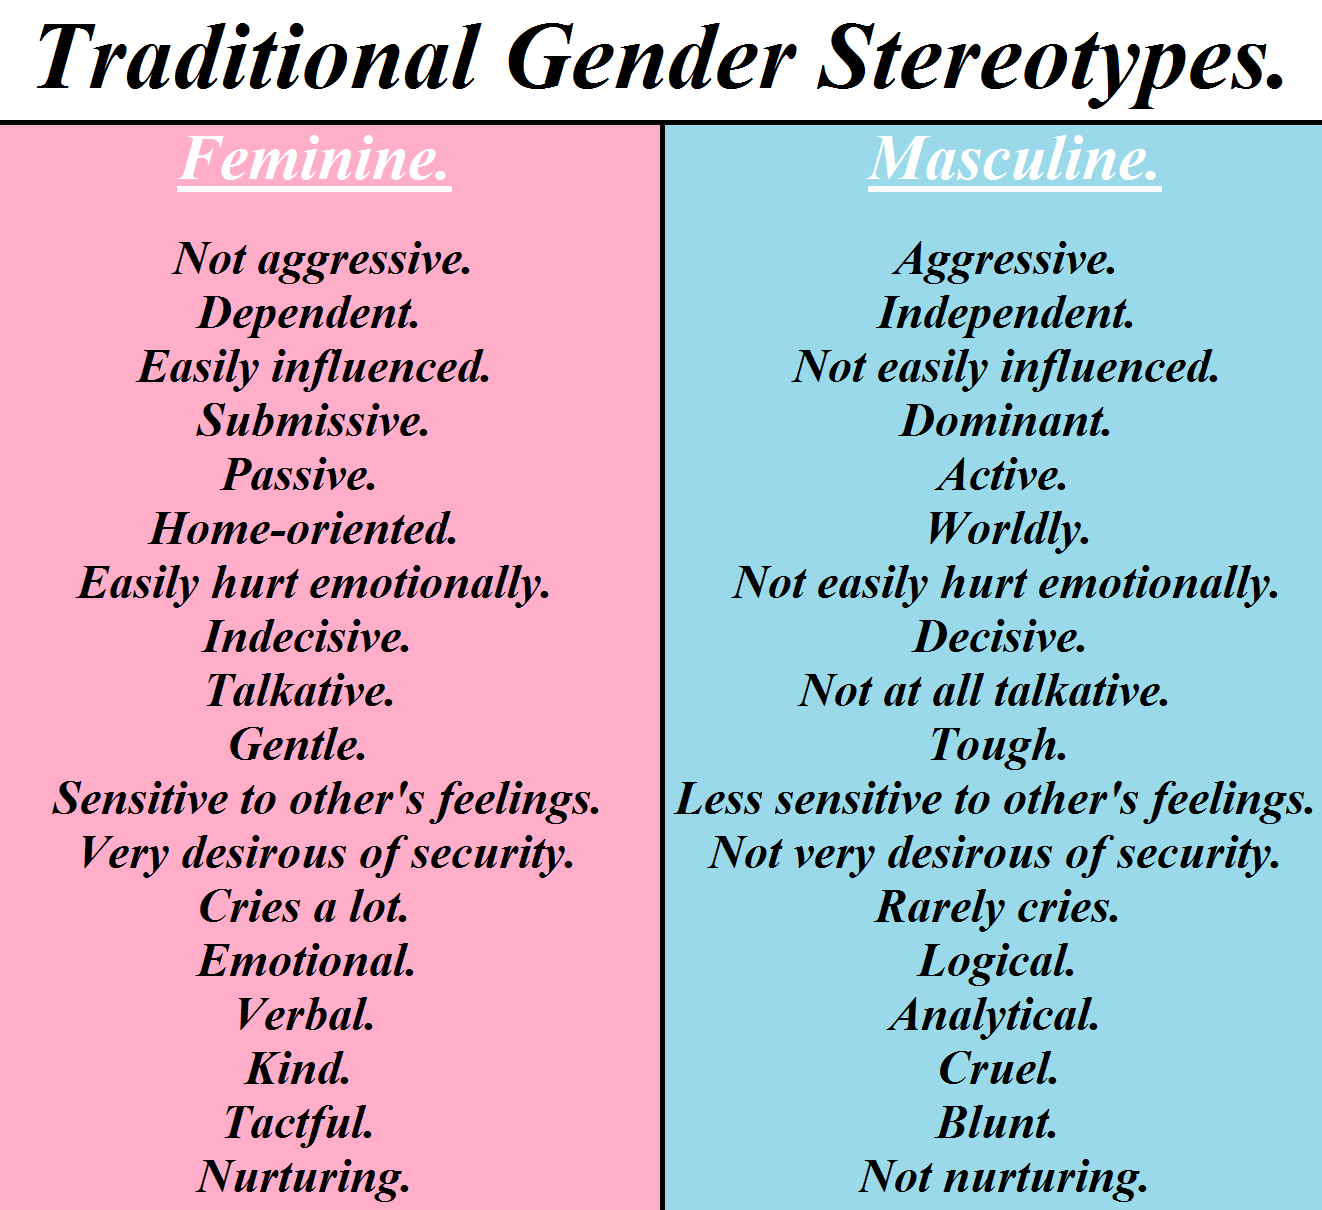 Stereotypes: A Big Problem in Our Modern Society